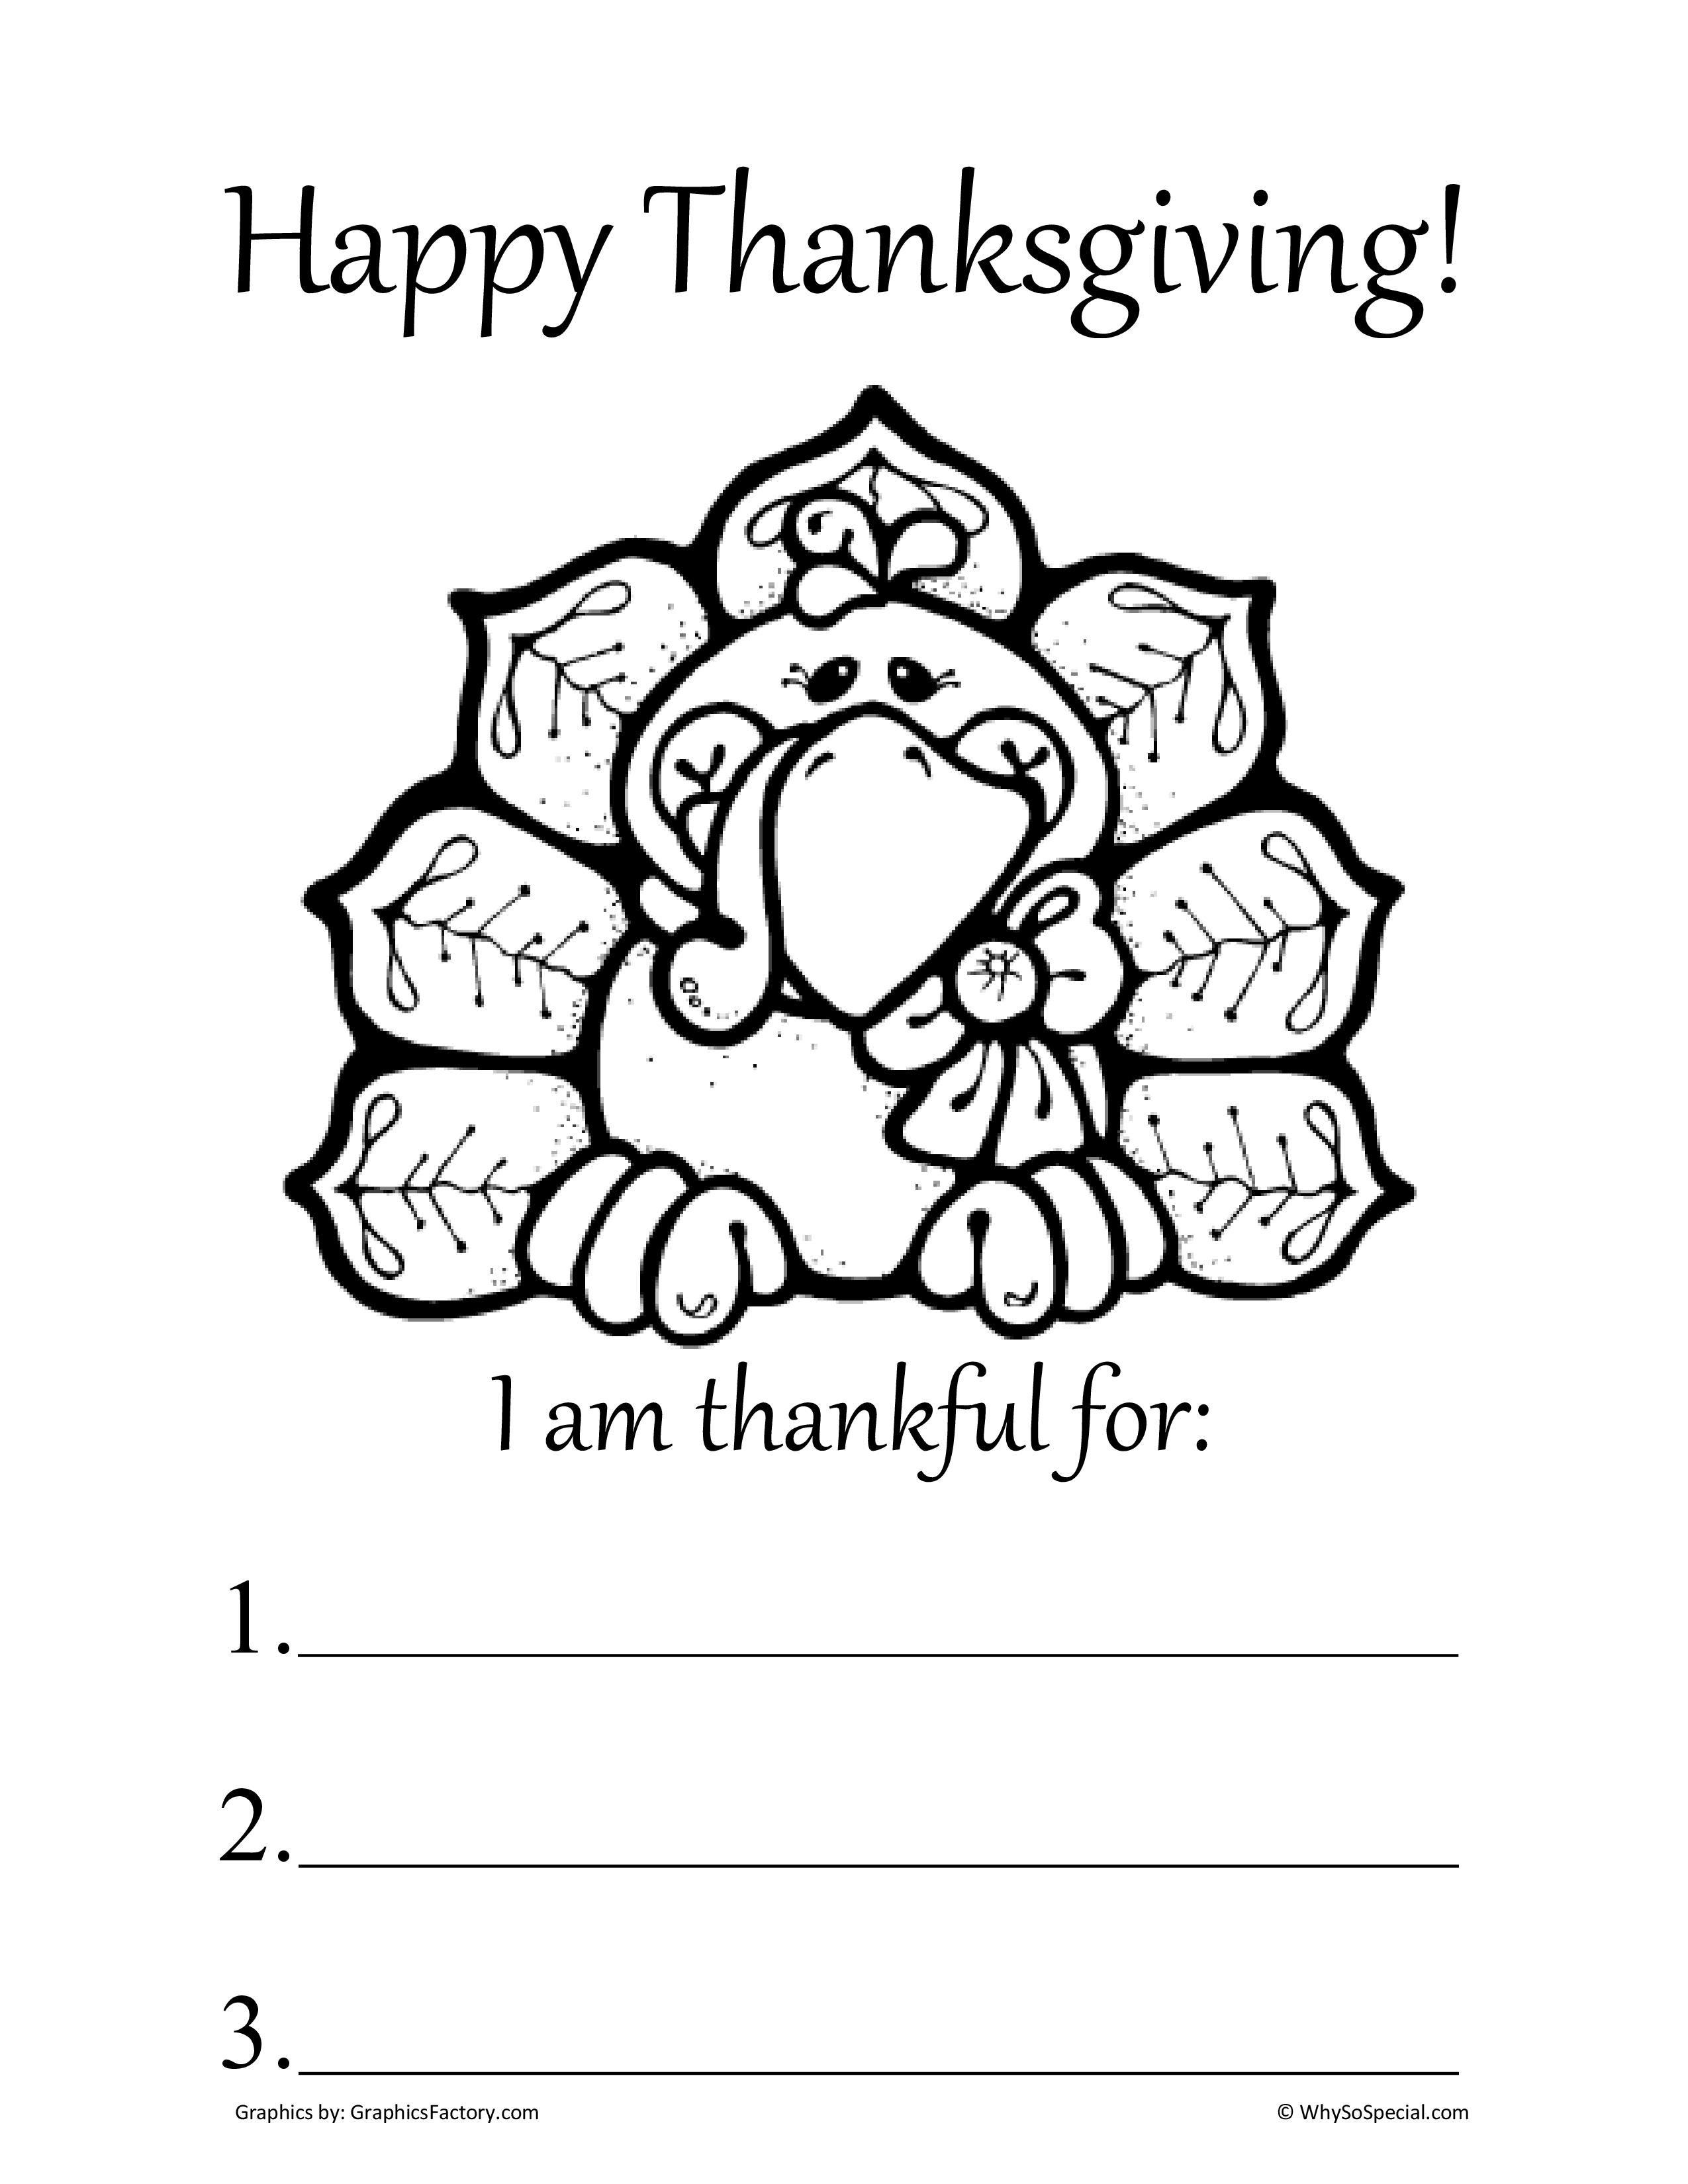 Thankful Worksheets The Best Worksheets Image Collection